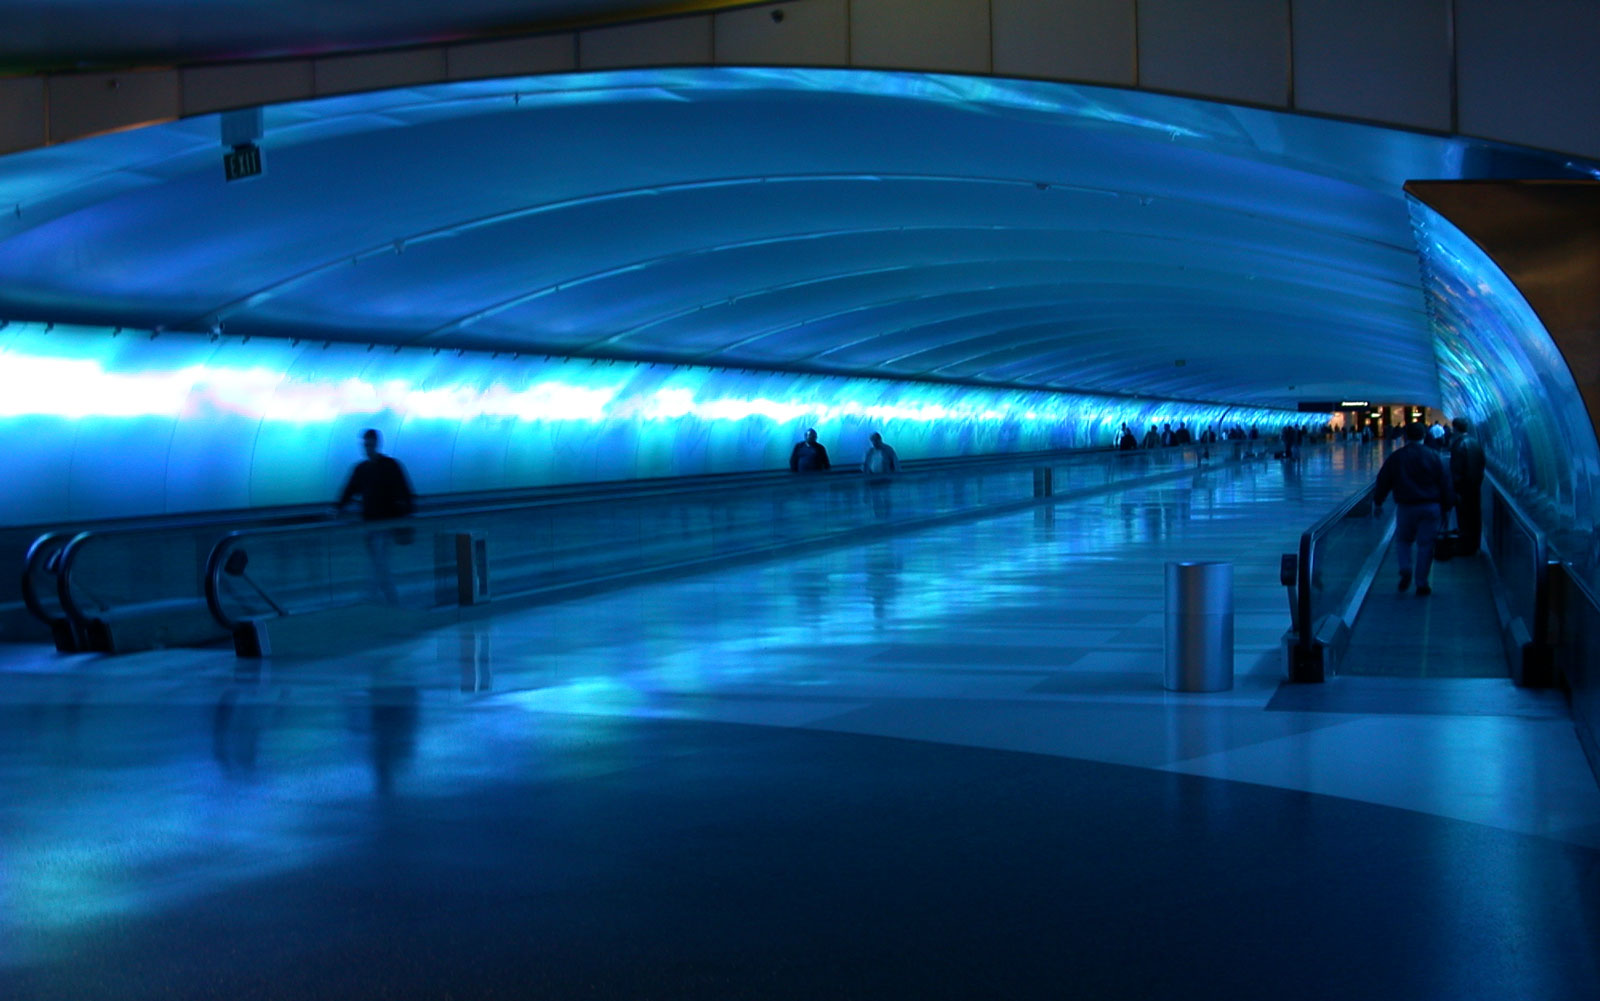 America's best and worst airports: Detroit Metropolitan (DTW)